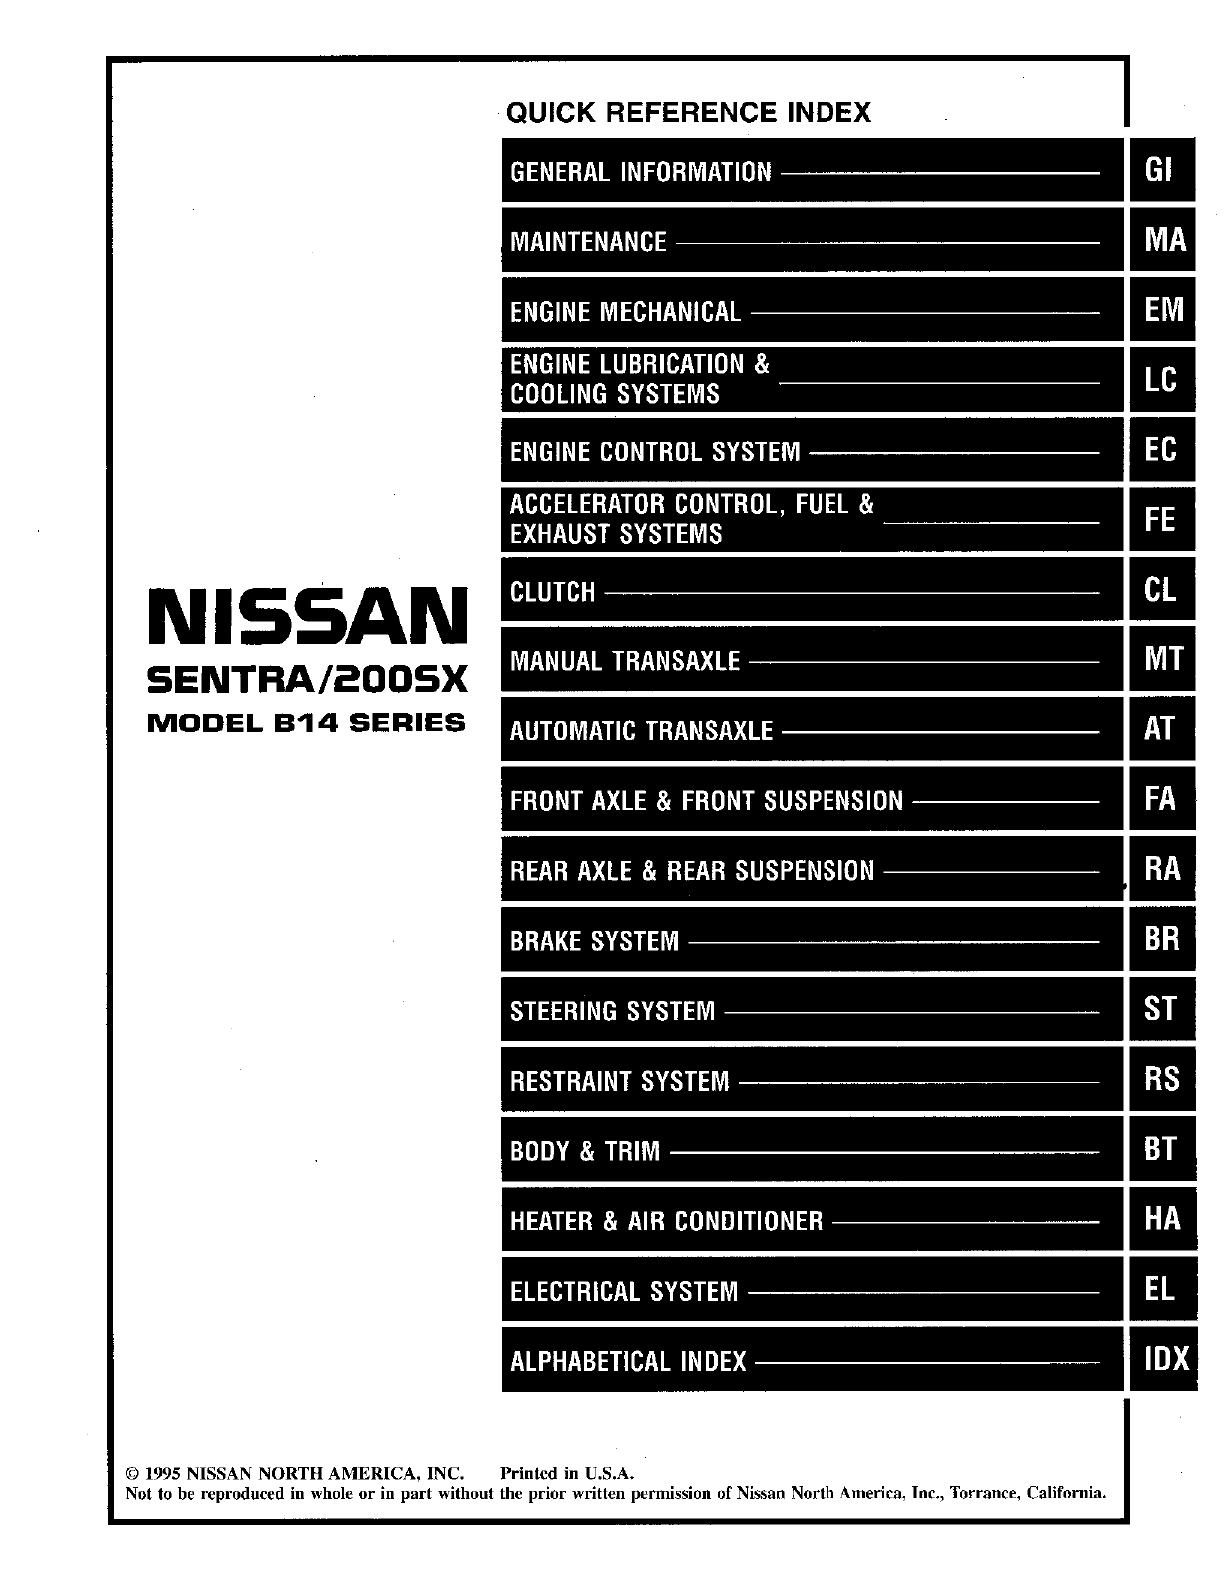 Nissan Sentra Service Manual: Engine room cover